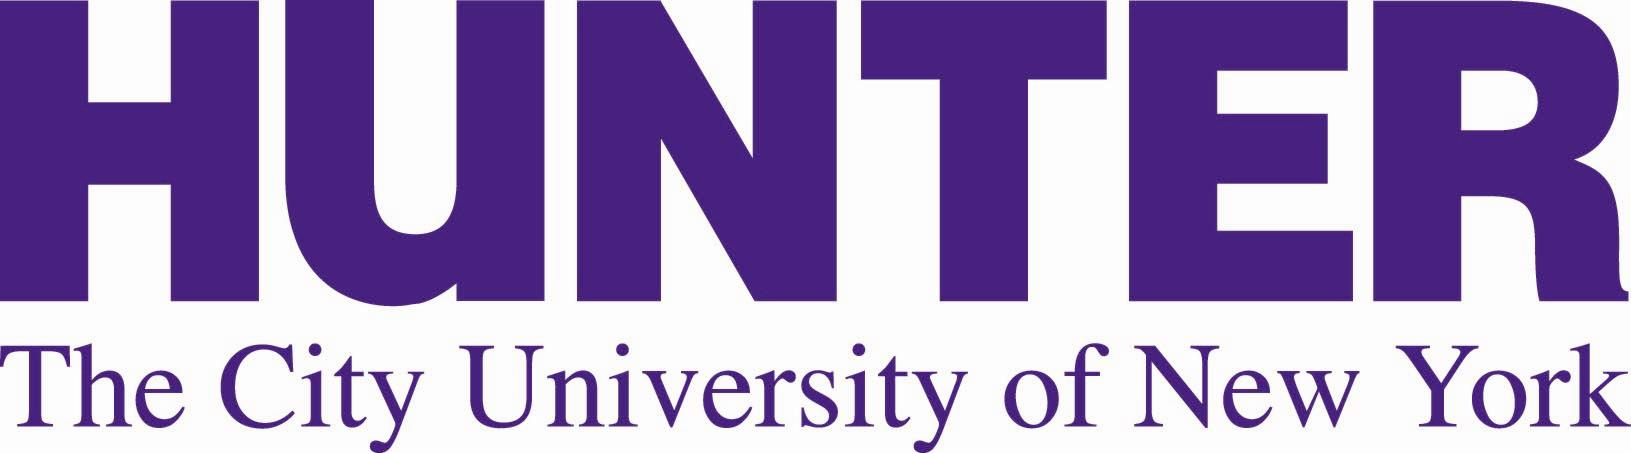 Hunter College